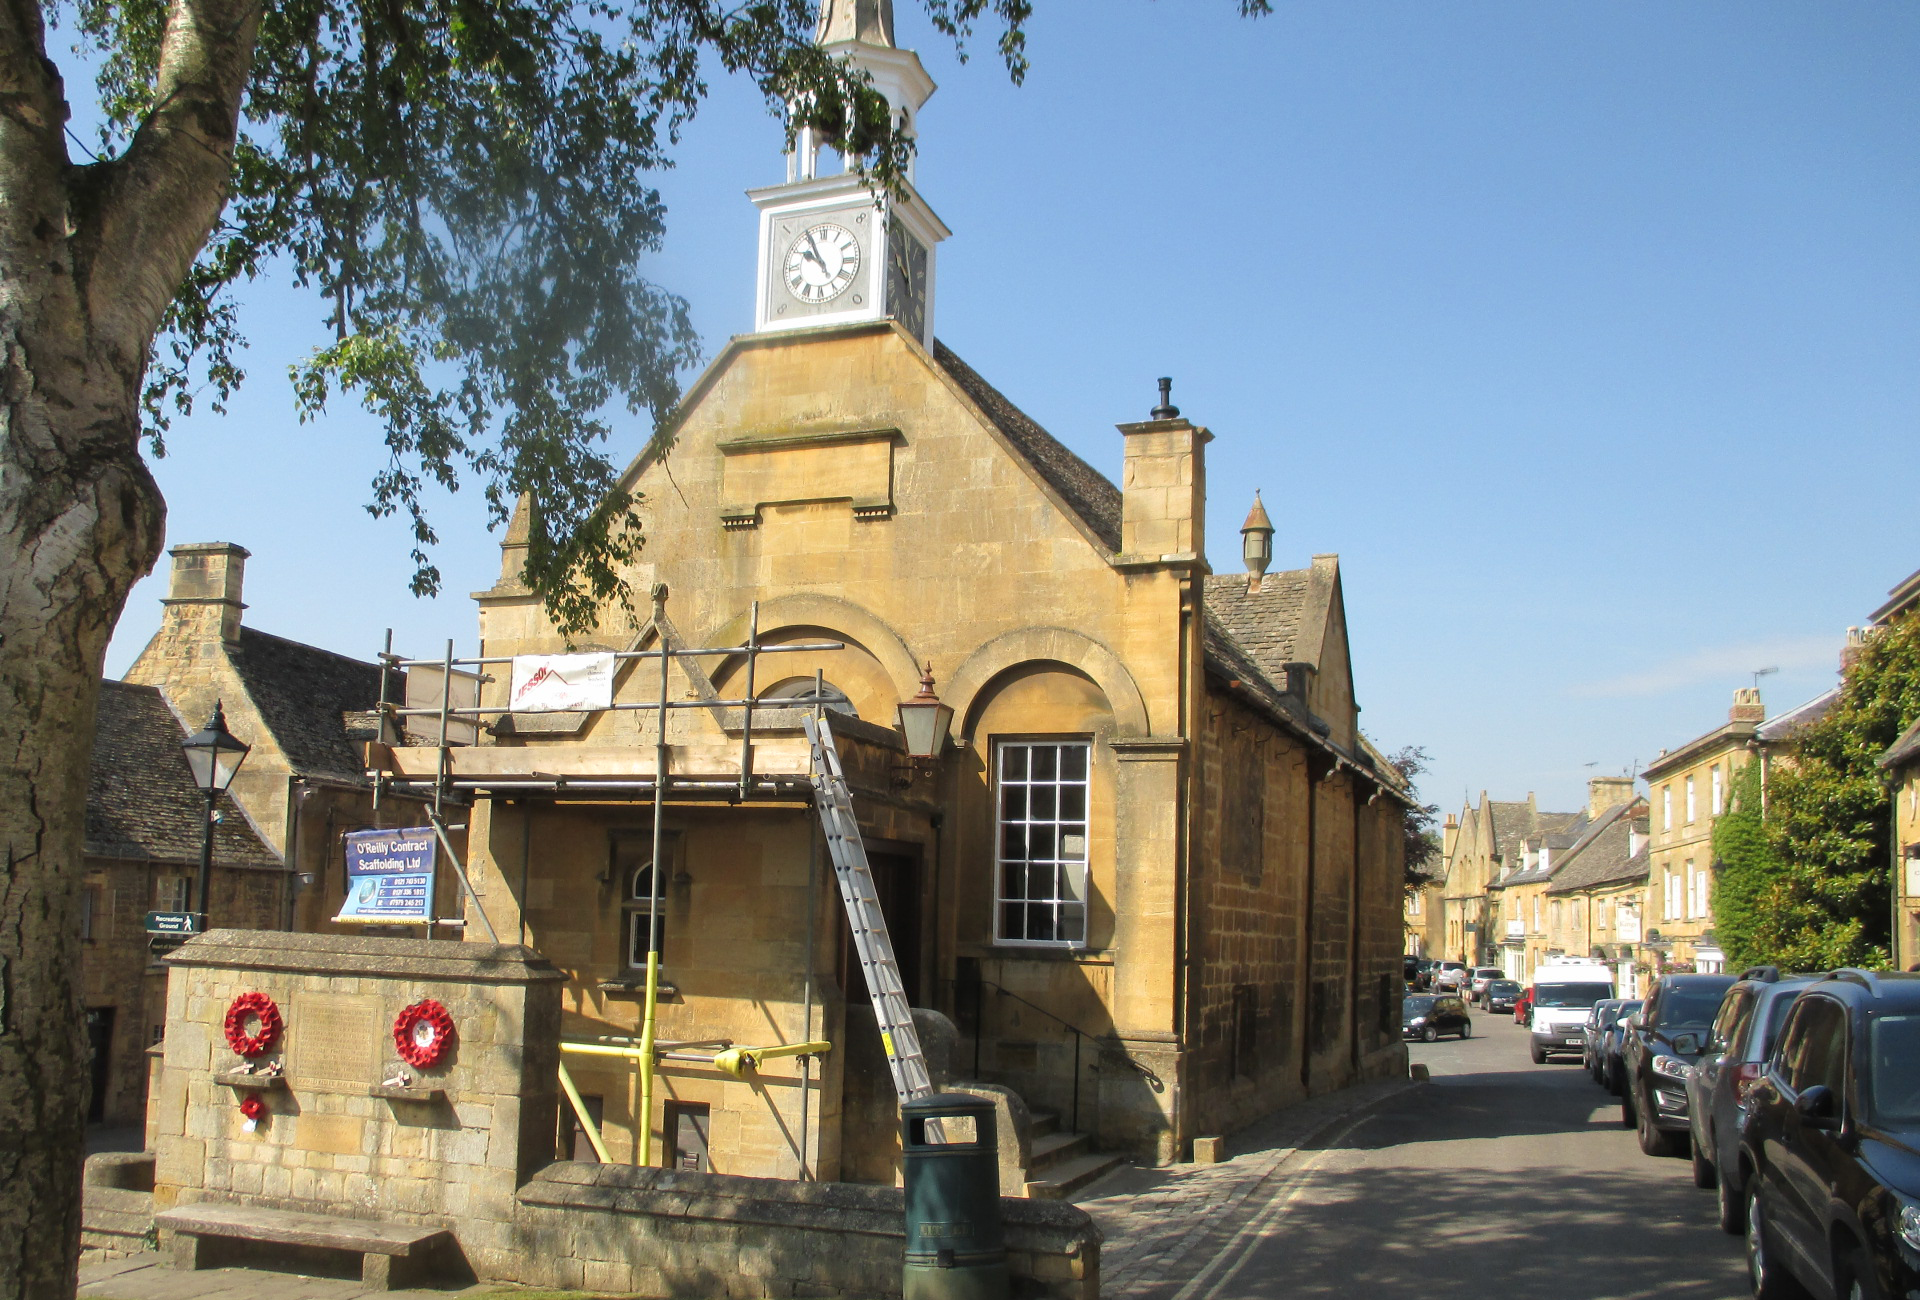 The Town Hall Grade II listed